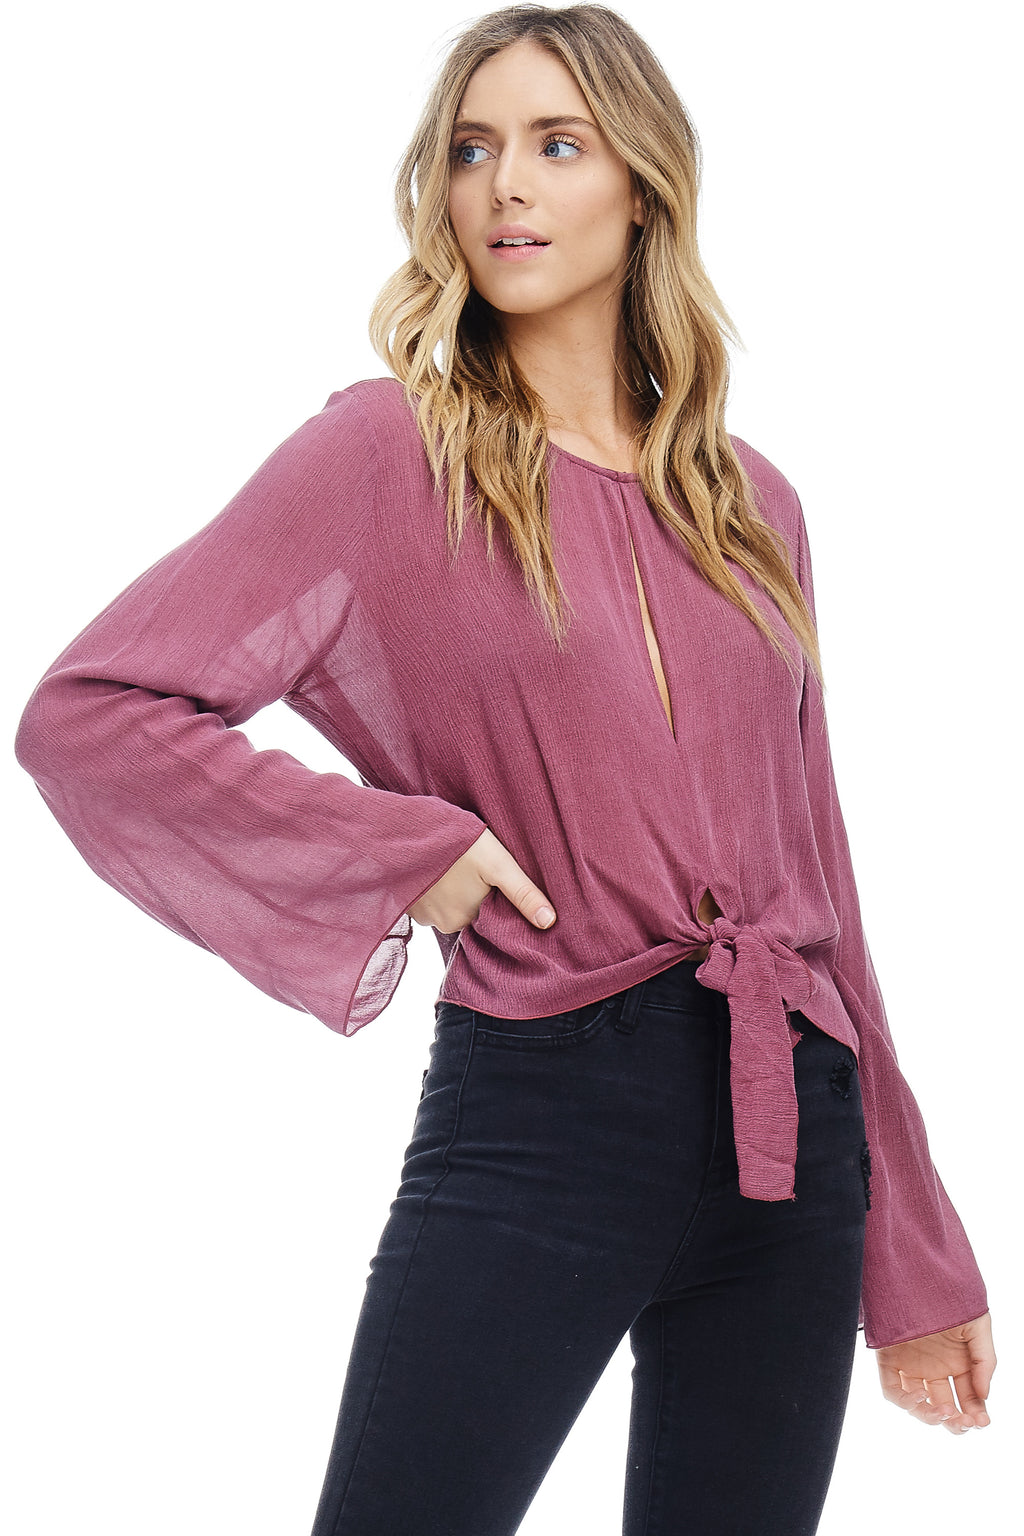 W18-108 Peephole Knotted Blouse